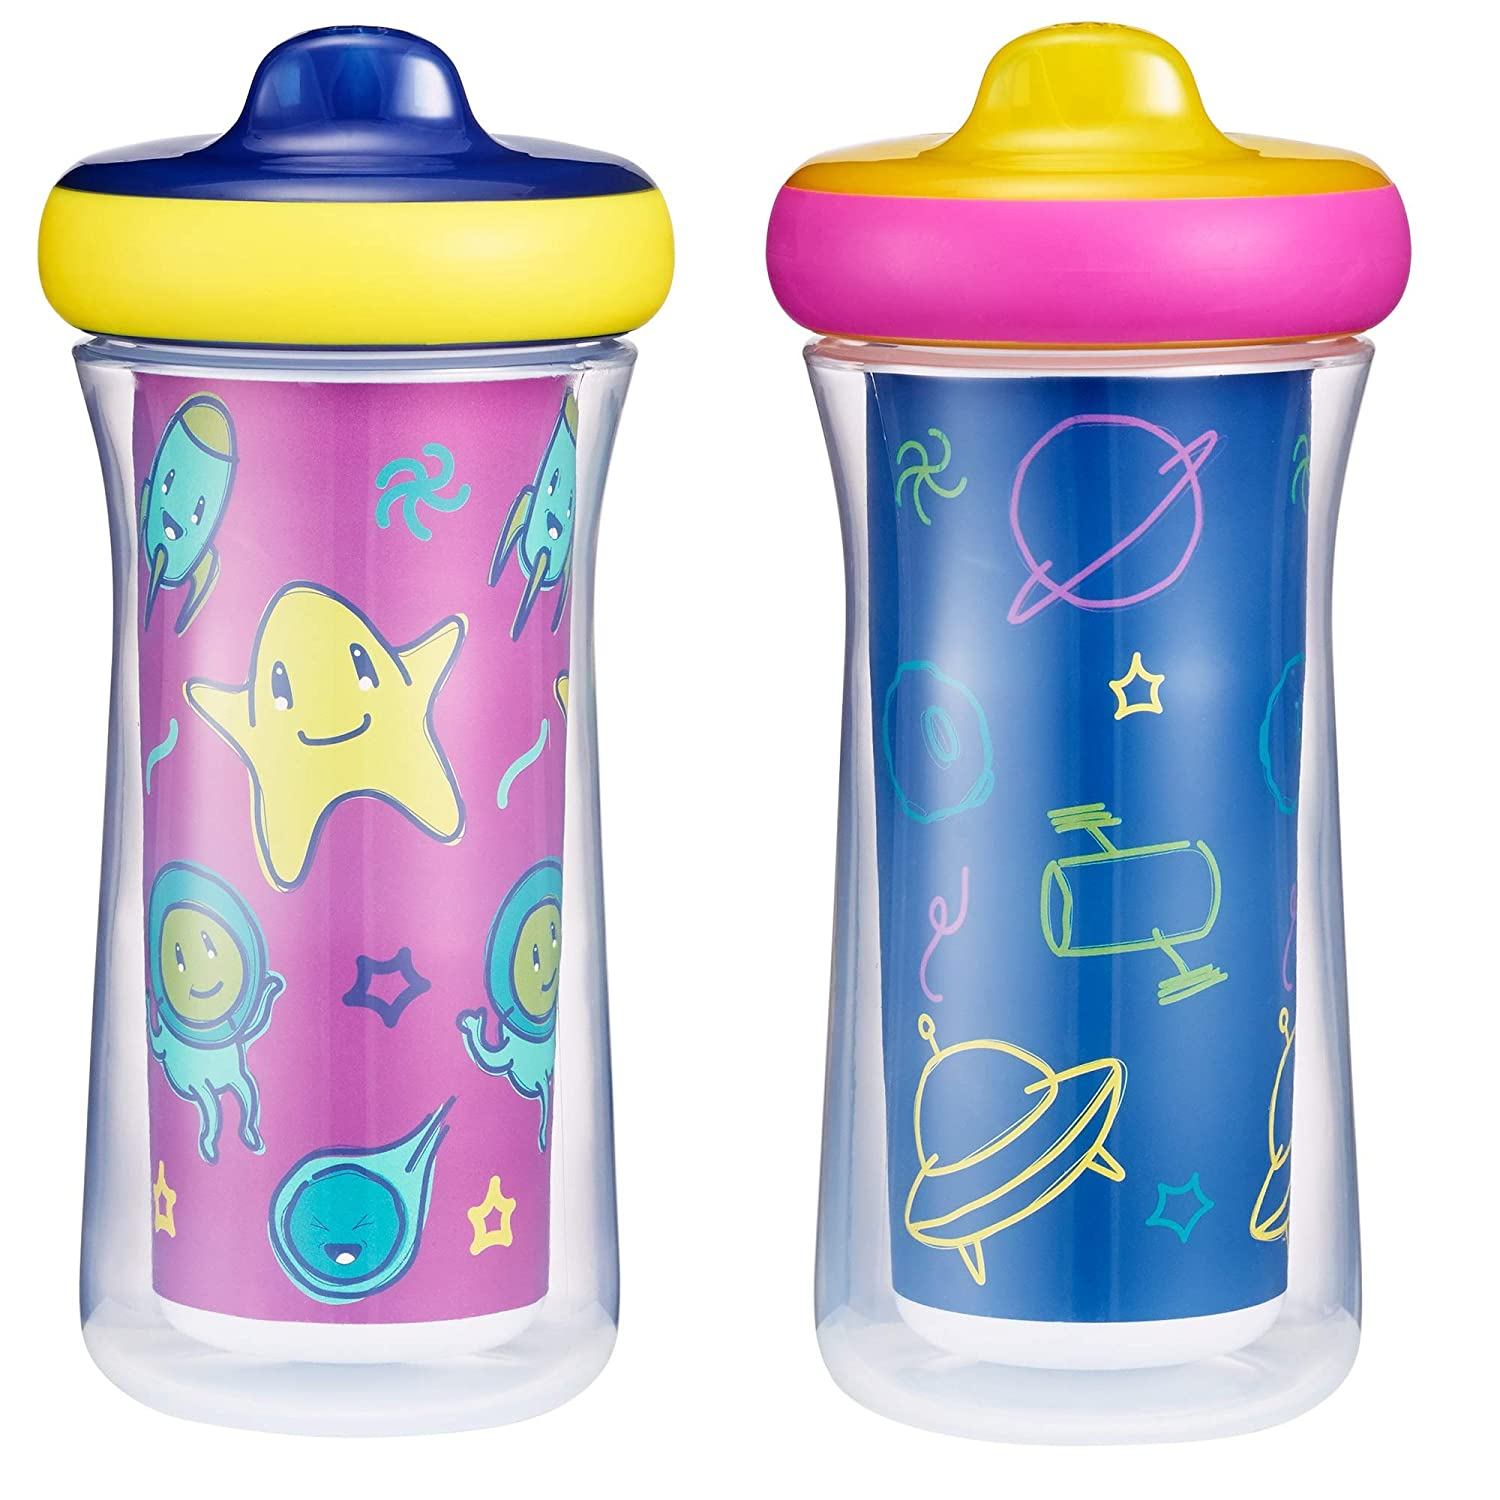 The First Years Insulated Sippy Cups 9 Oz - 2 Pack, Multi